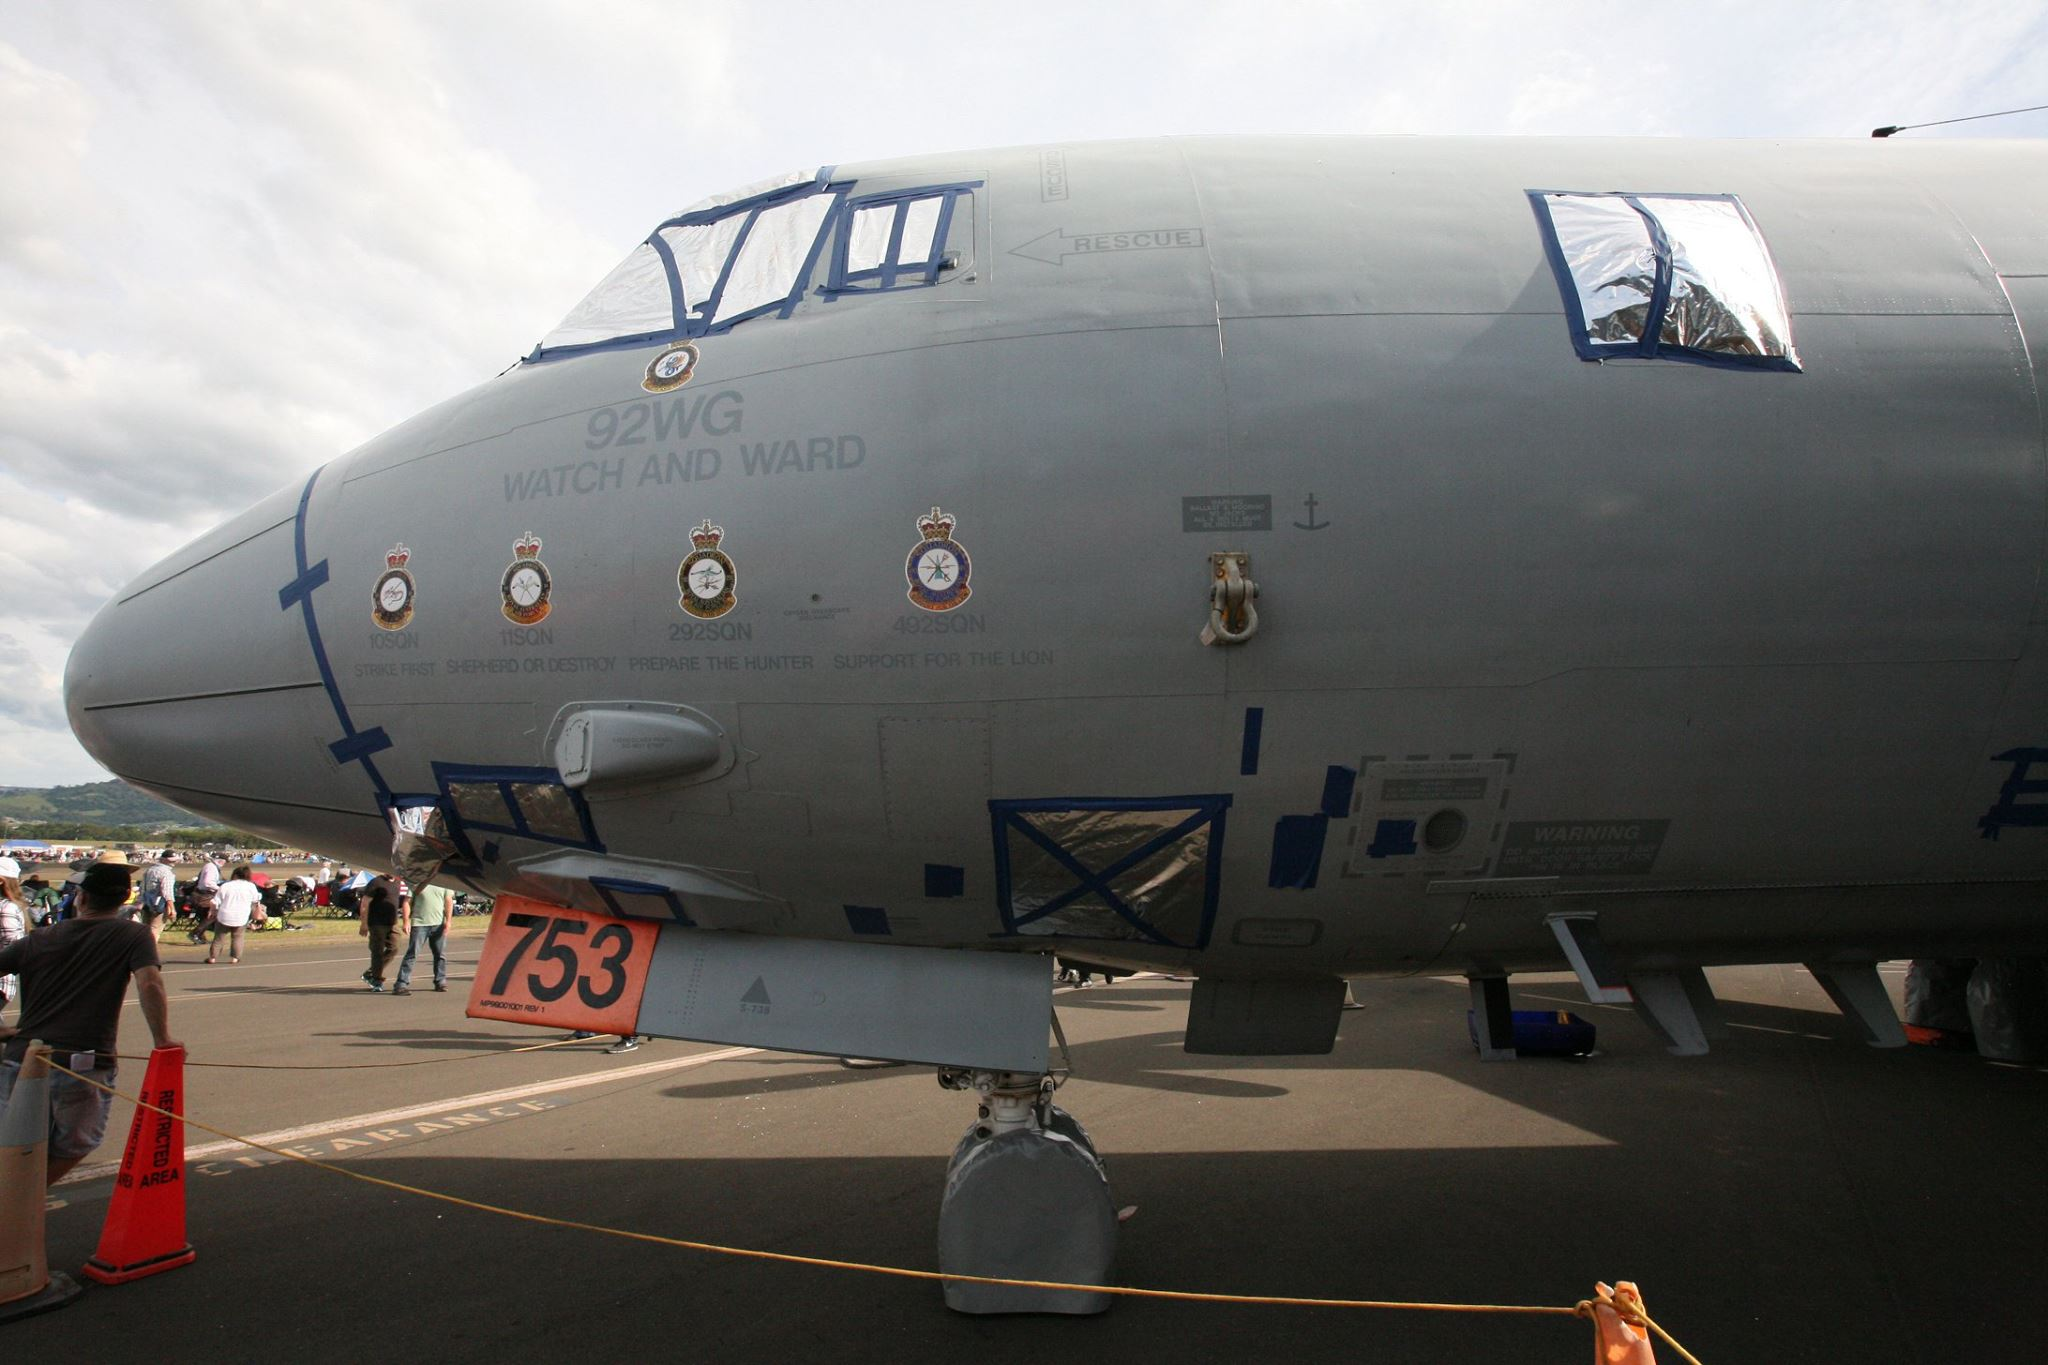 A closeup of A9-753 showing her squadron heritage. Note the tape covering panels lines and the silver foil window coverings. These were put in place to protect the integrity of the aircraft while the Australian Department of Defense sought permission to formally hand over ownership to HARS. The museum will soon get to work preparing the Orion to fly once more. (photo by Phil Buckley)